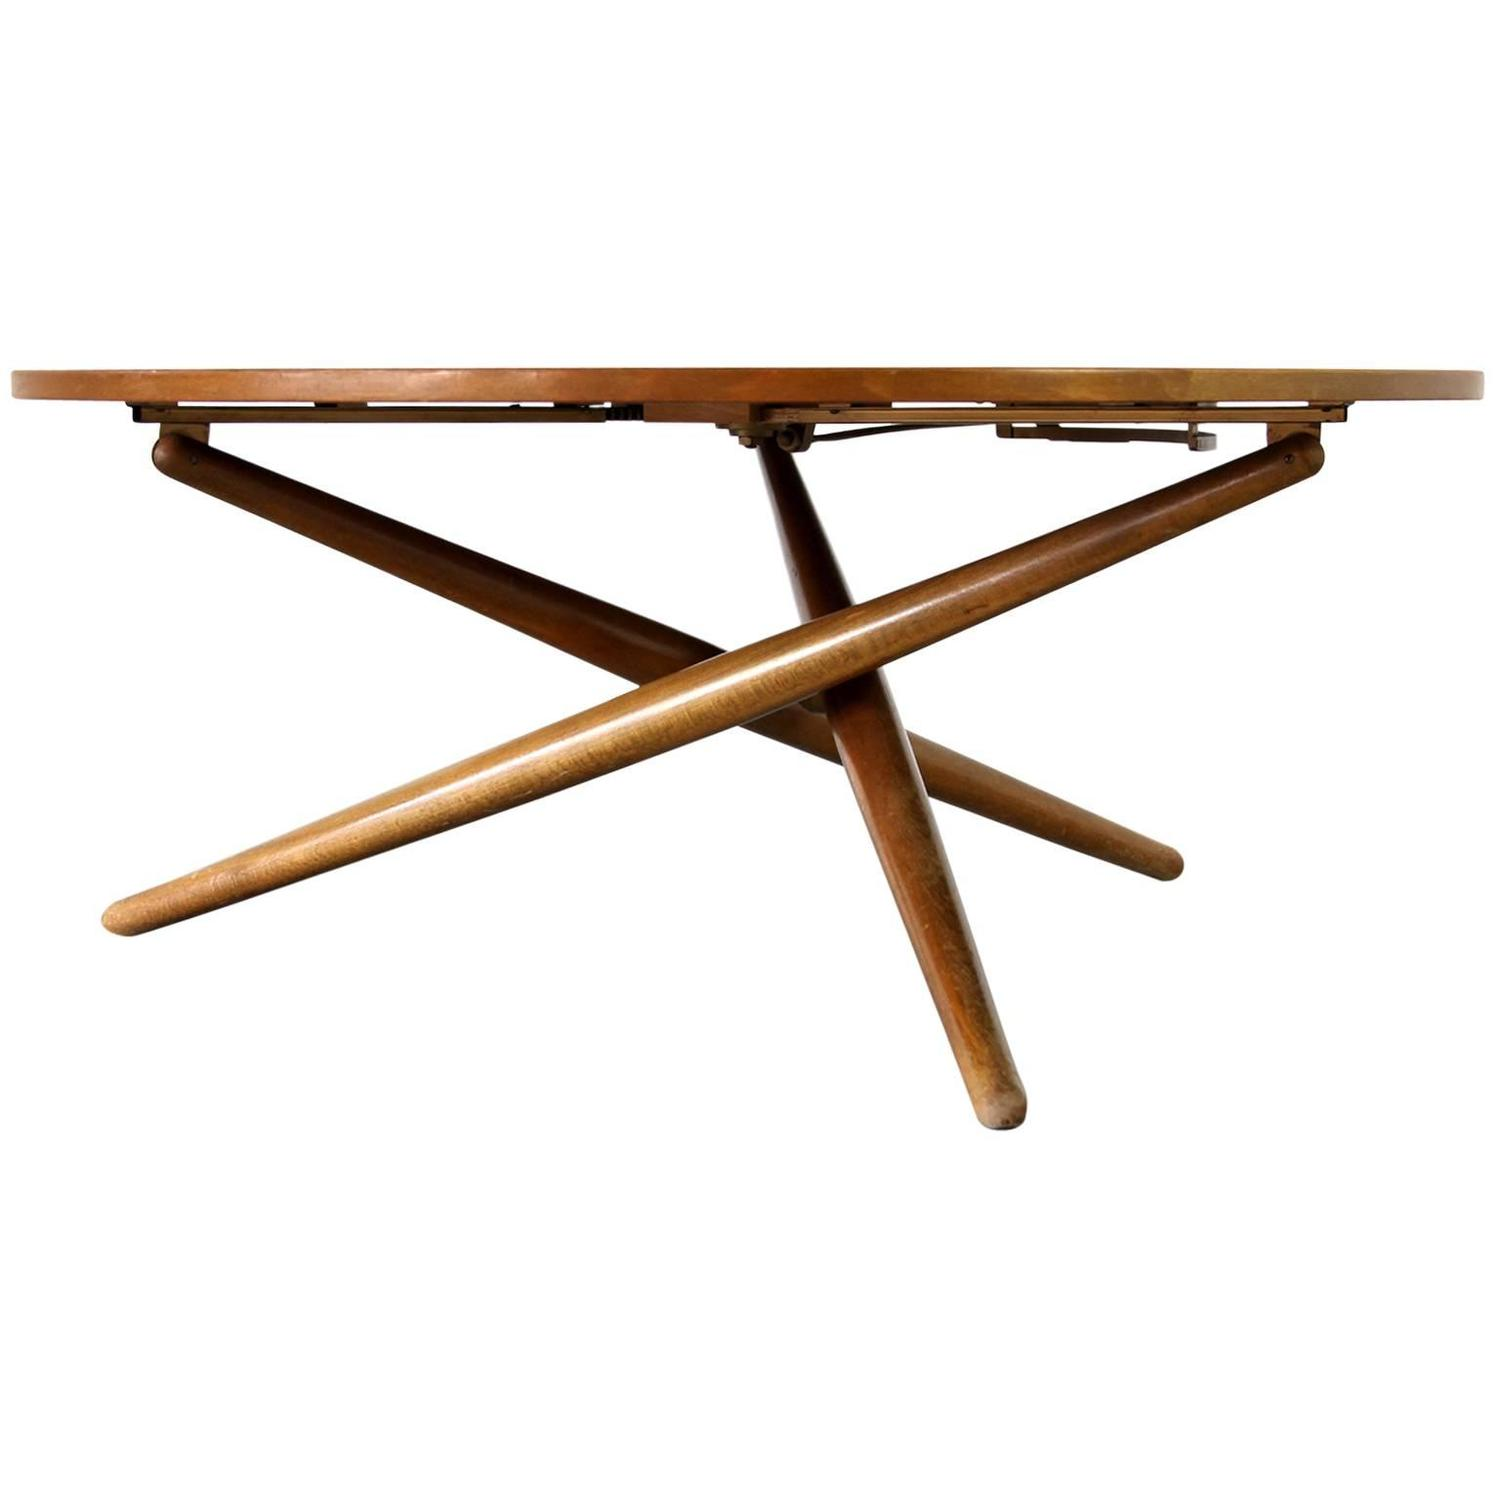 Height Adjustable Coffee Table By Jurg Bally For Wohnhilfe 1951 At 1stdibs